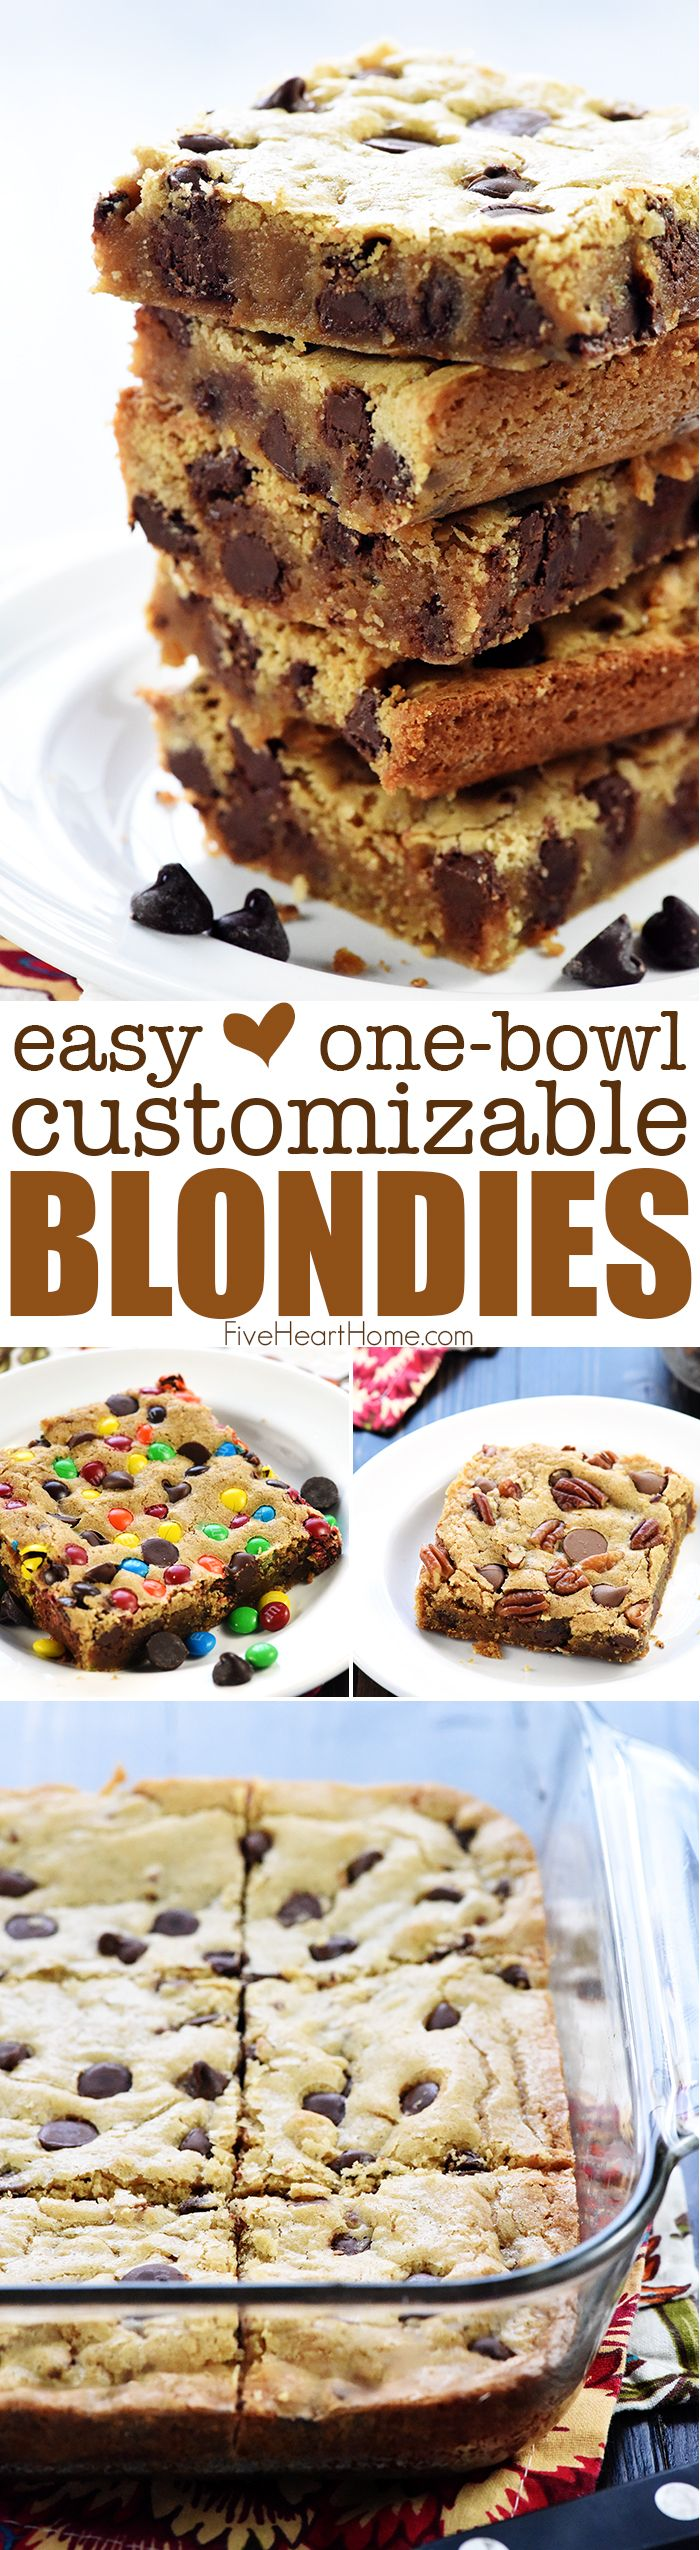 Easy One-Bowl Blondies ~ quick to make and completely customizable, from classic chocolate chips to your favorite candy, nuts, coconut, dried fruit and more! | FiveHeartHome.com